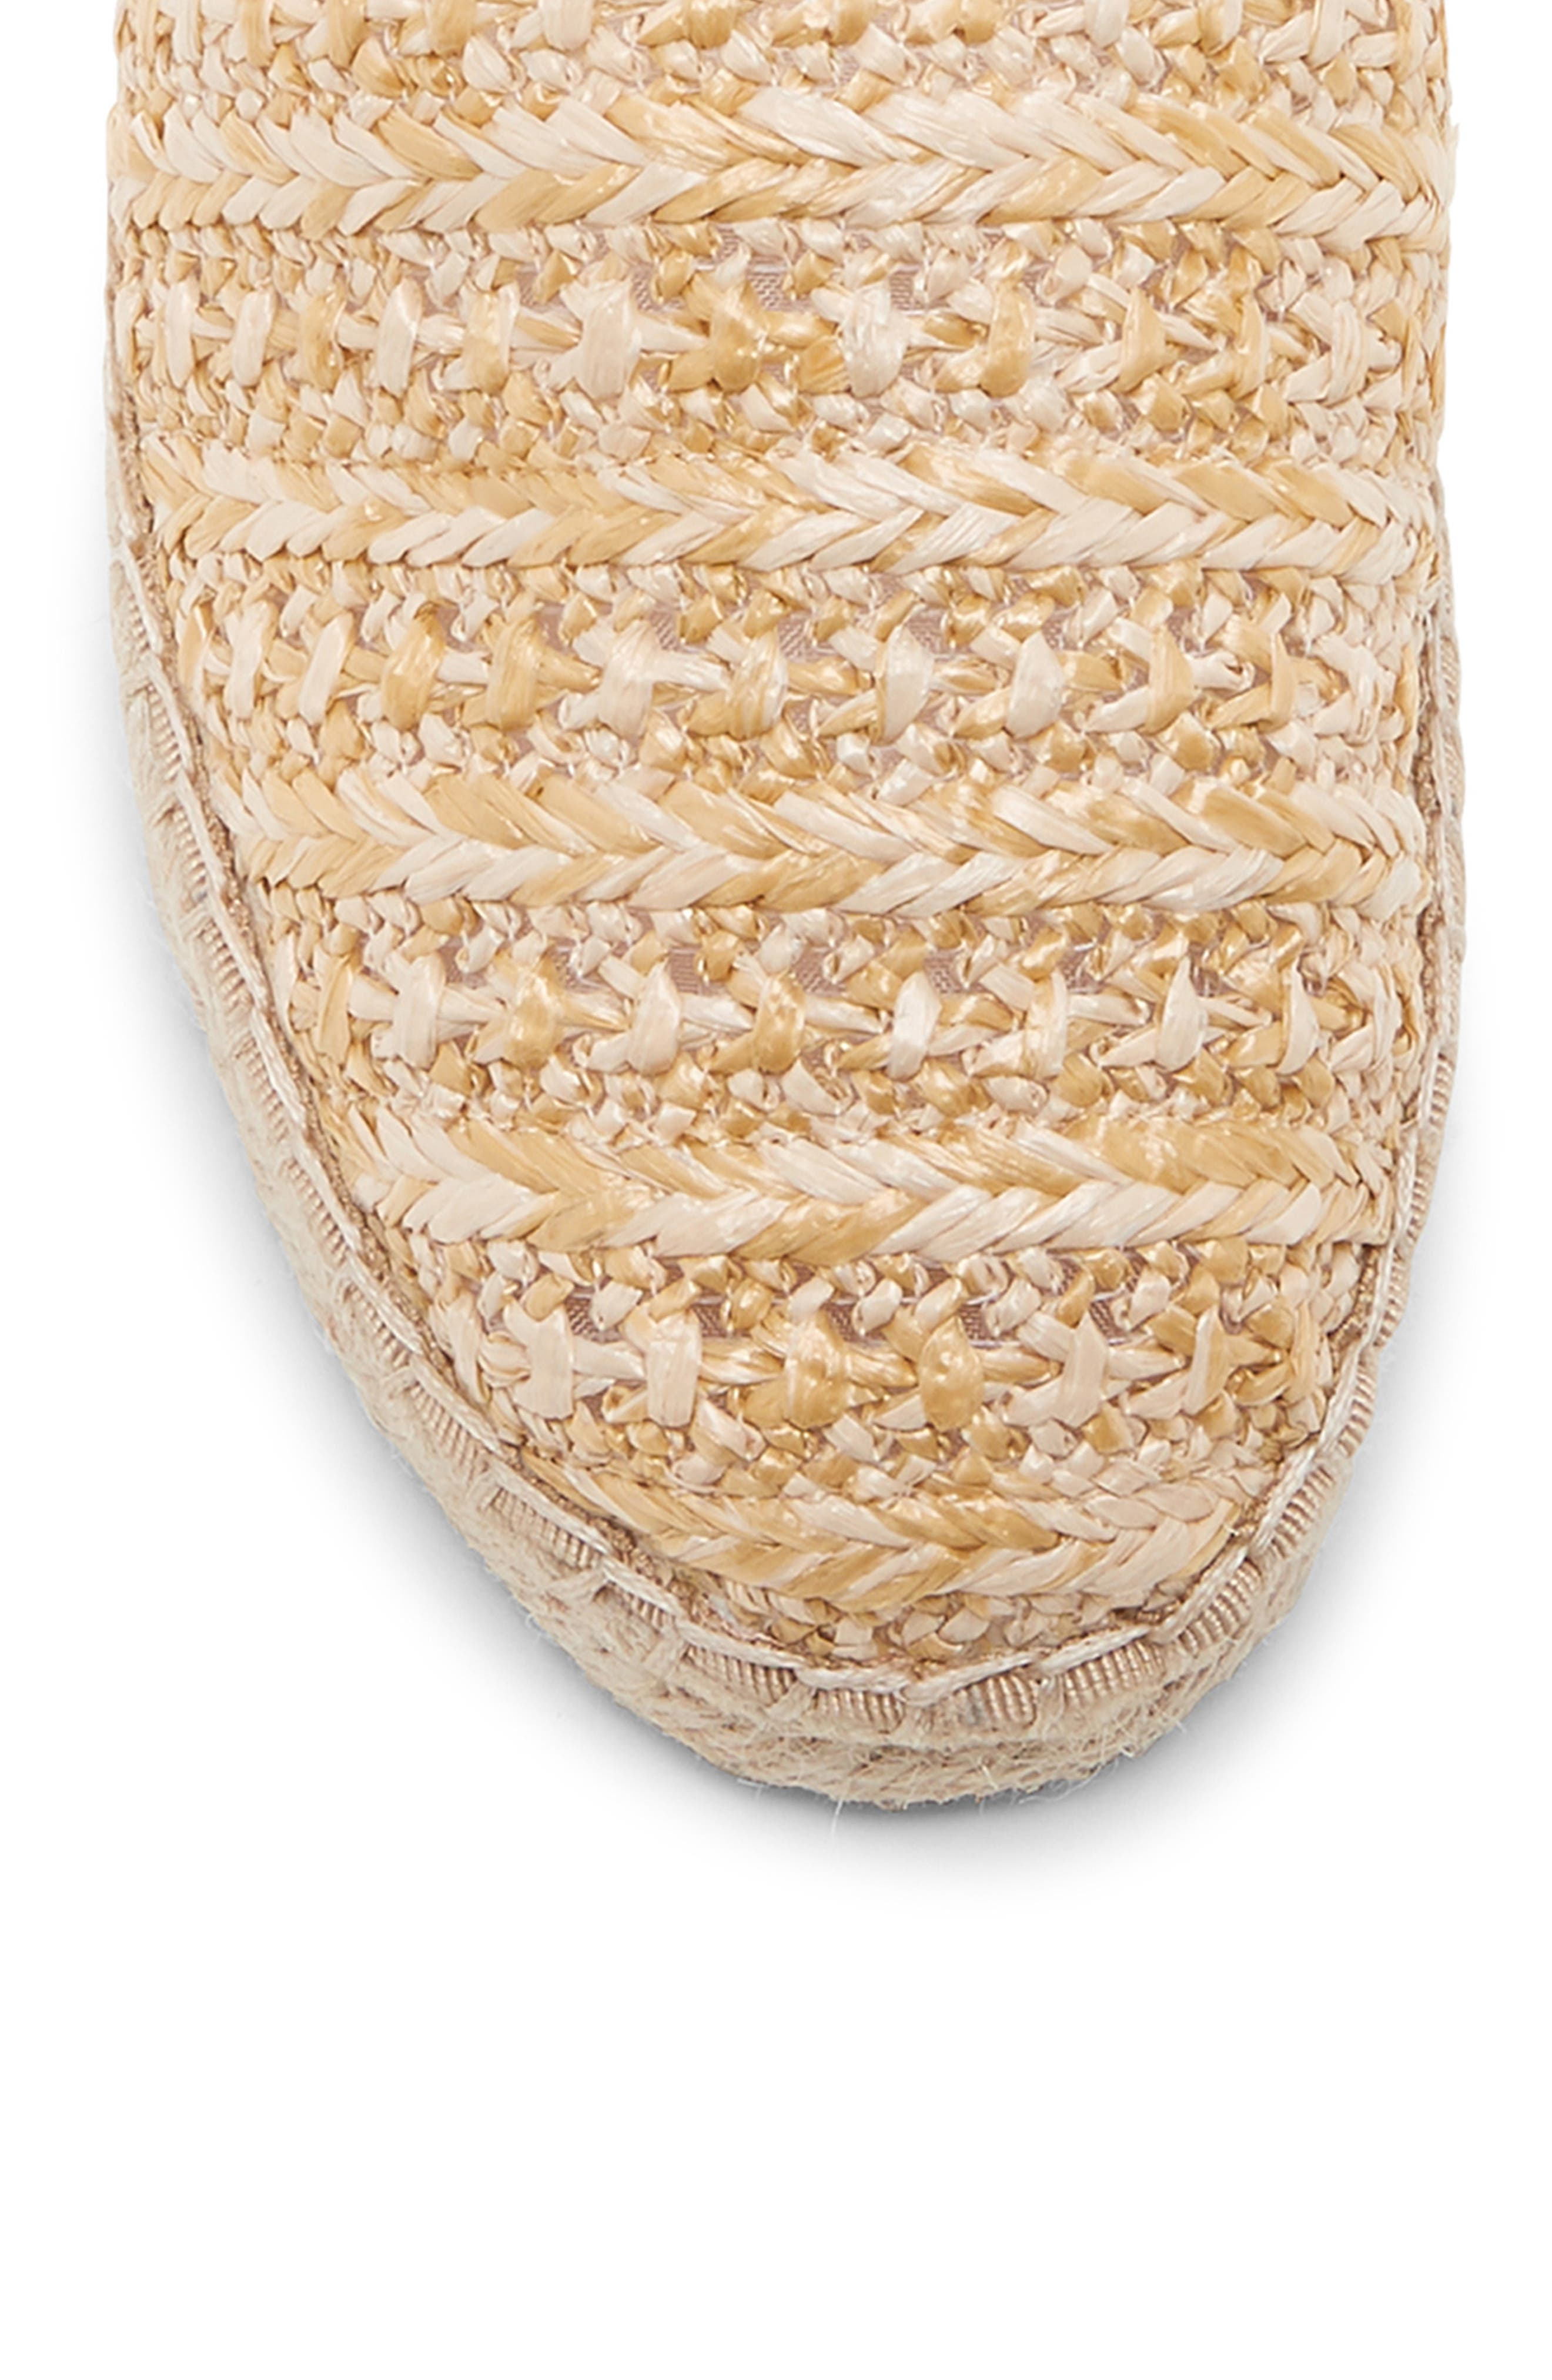 SOLE SOCIETY, Sadelle Espadrille Mule, Alternate thumbnail 8, color, NATURAL FABRIC